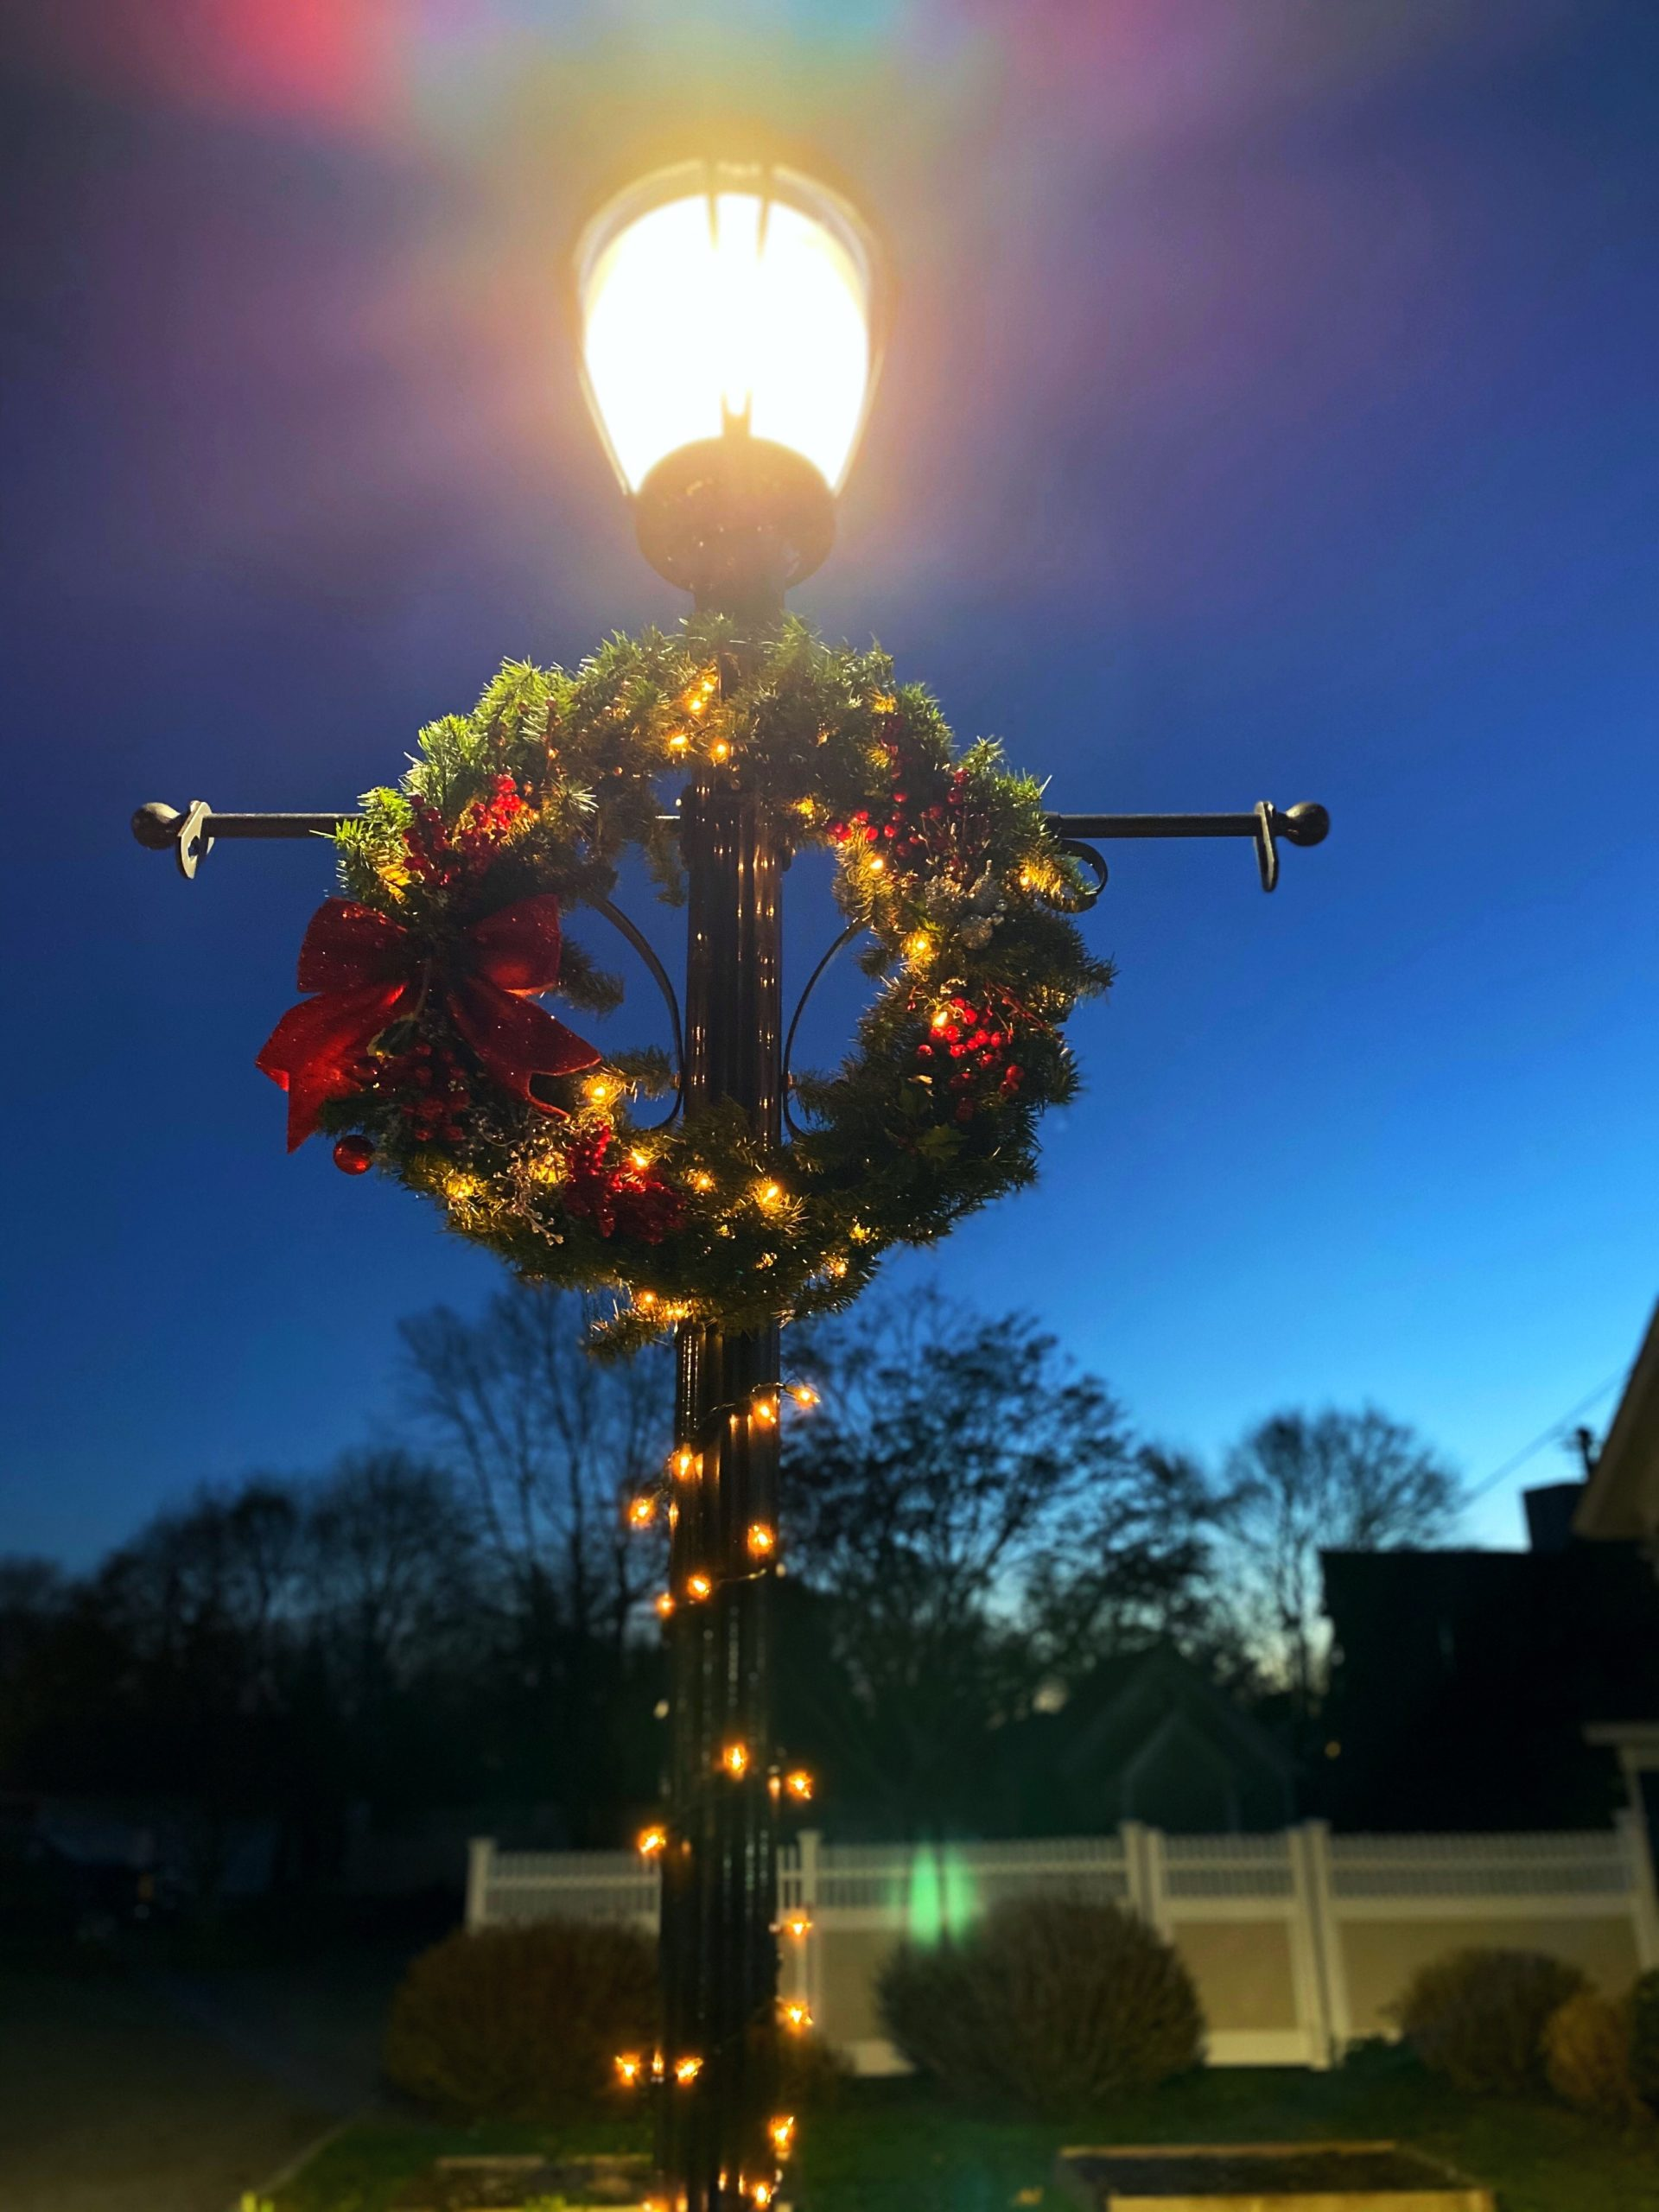 The Greater Eastport Chamber of Commerce and the Eastport Green Project raised money to light wreaths on Main Street last weekend in honor of the holiday season.